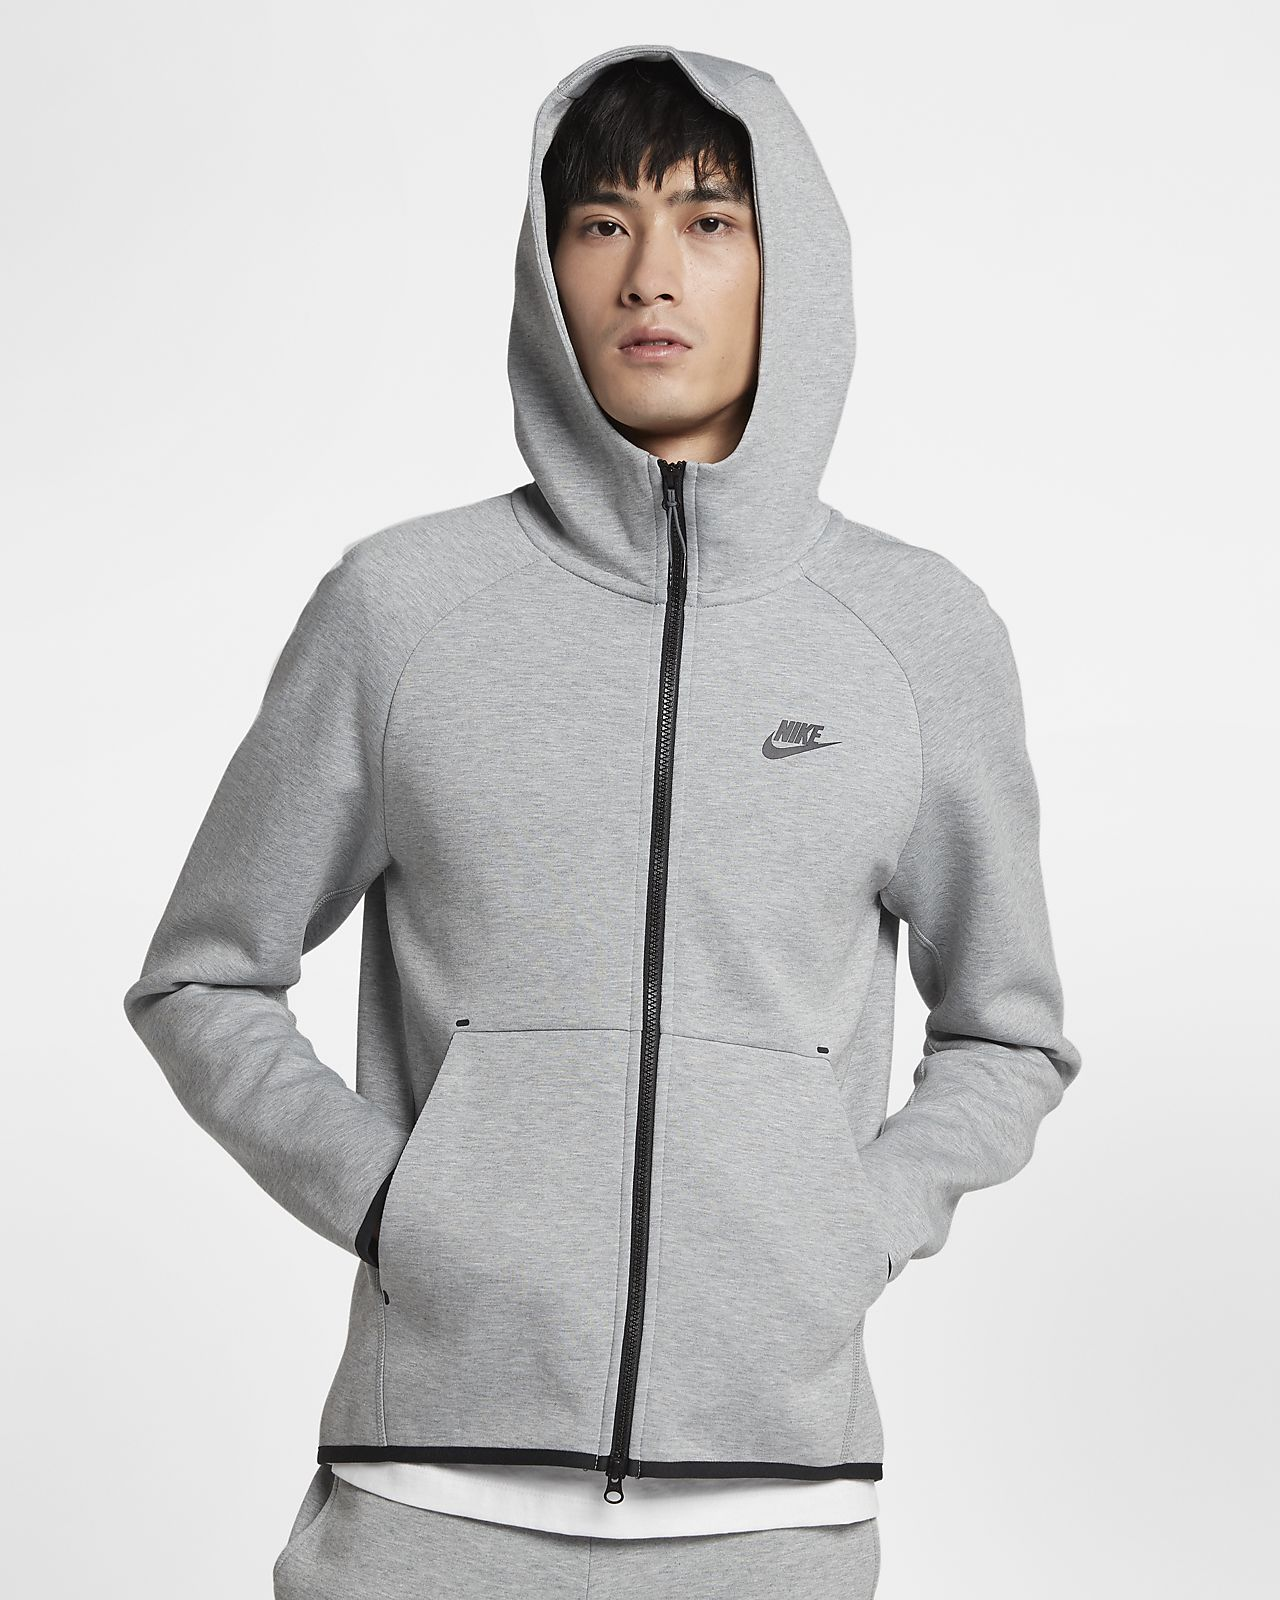 Huvtröja Nike Sportswear Tech Fleece Full-Zip för män